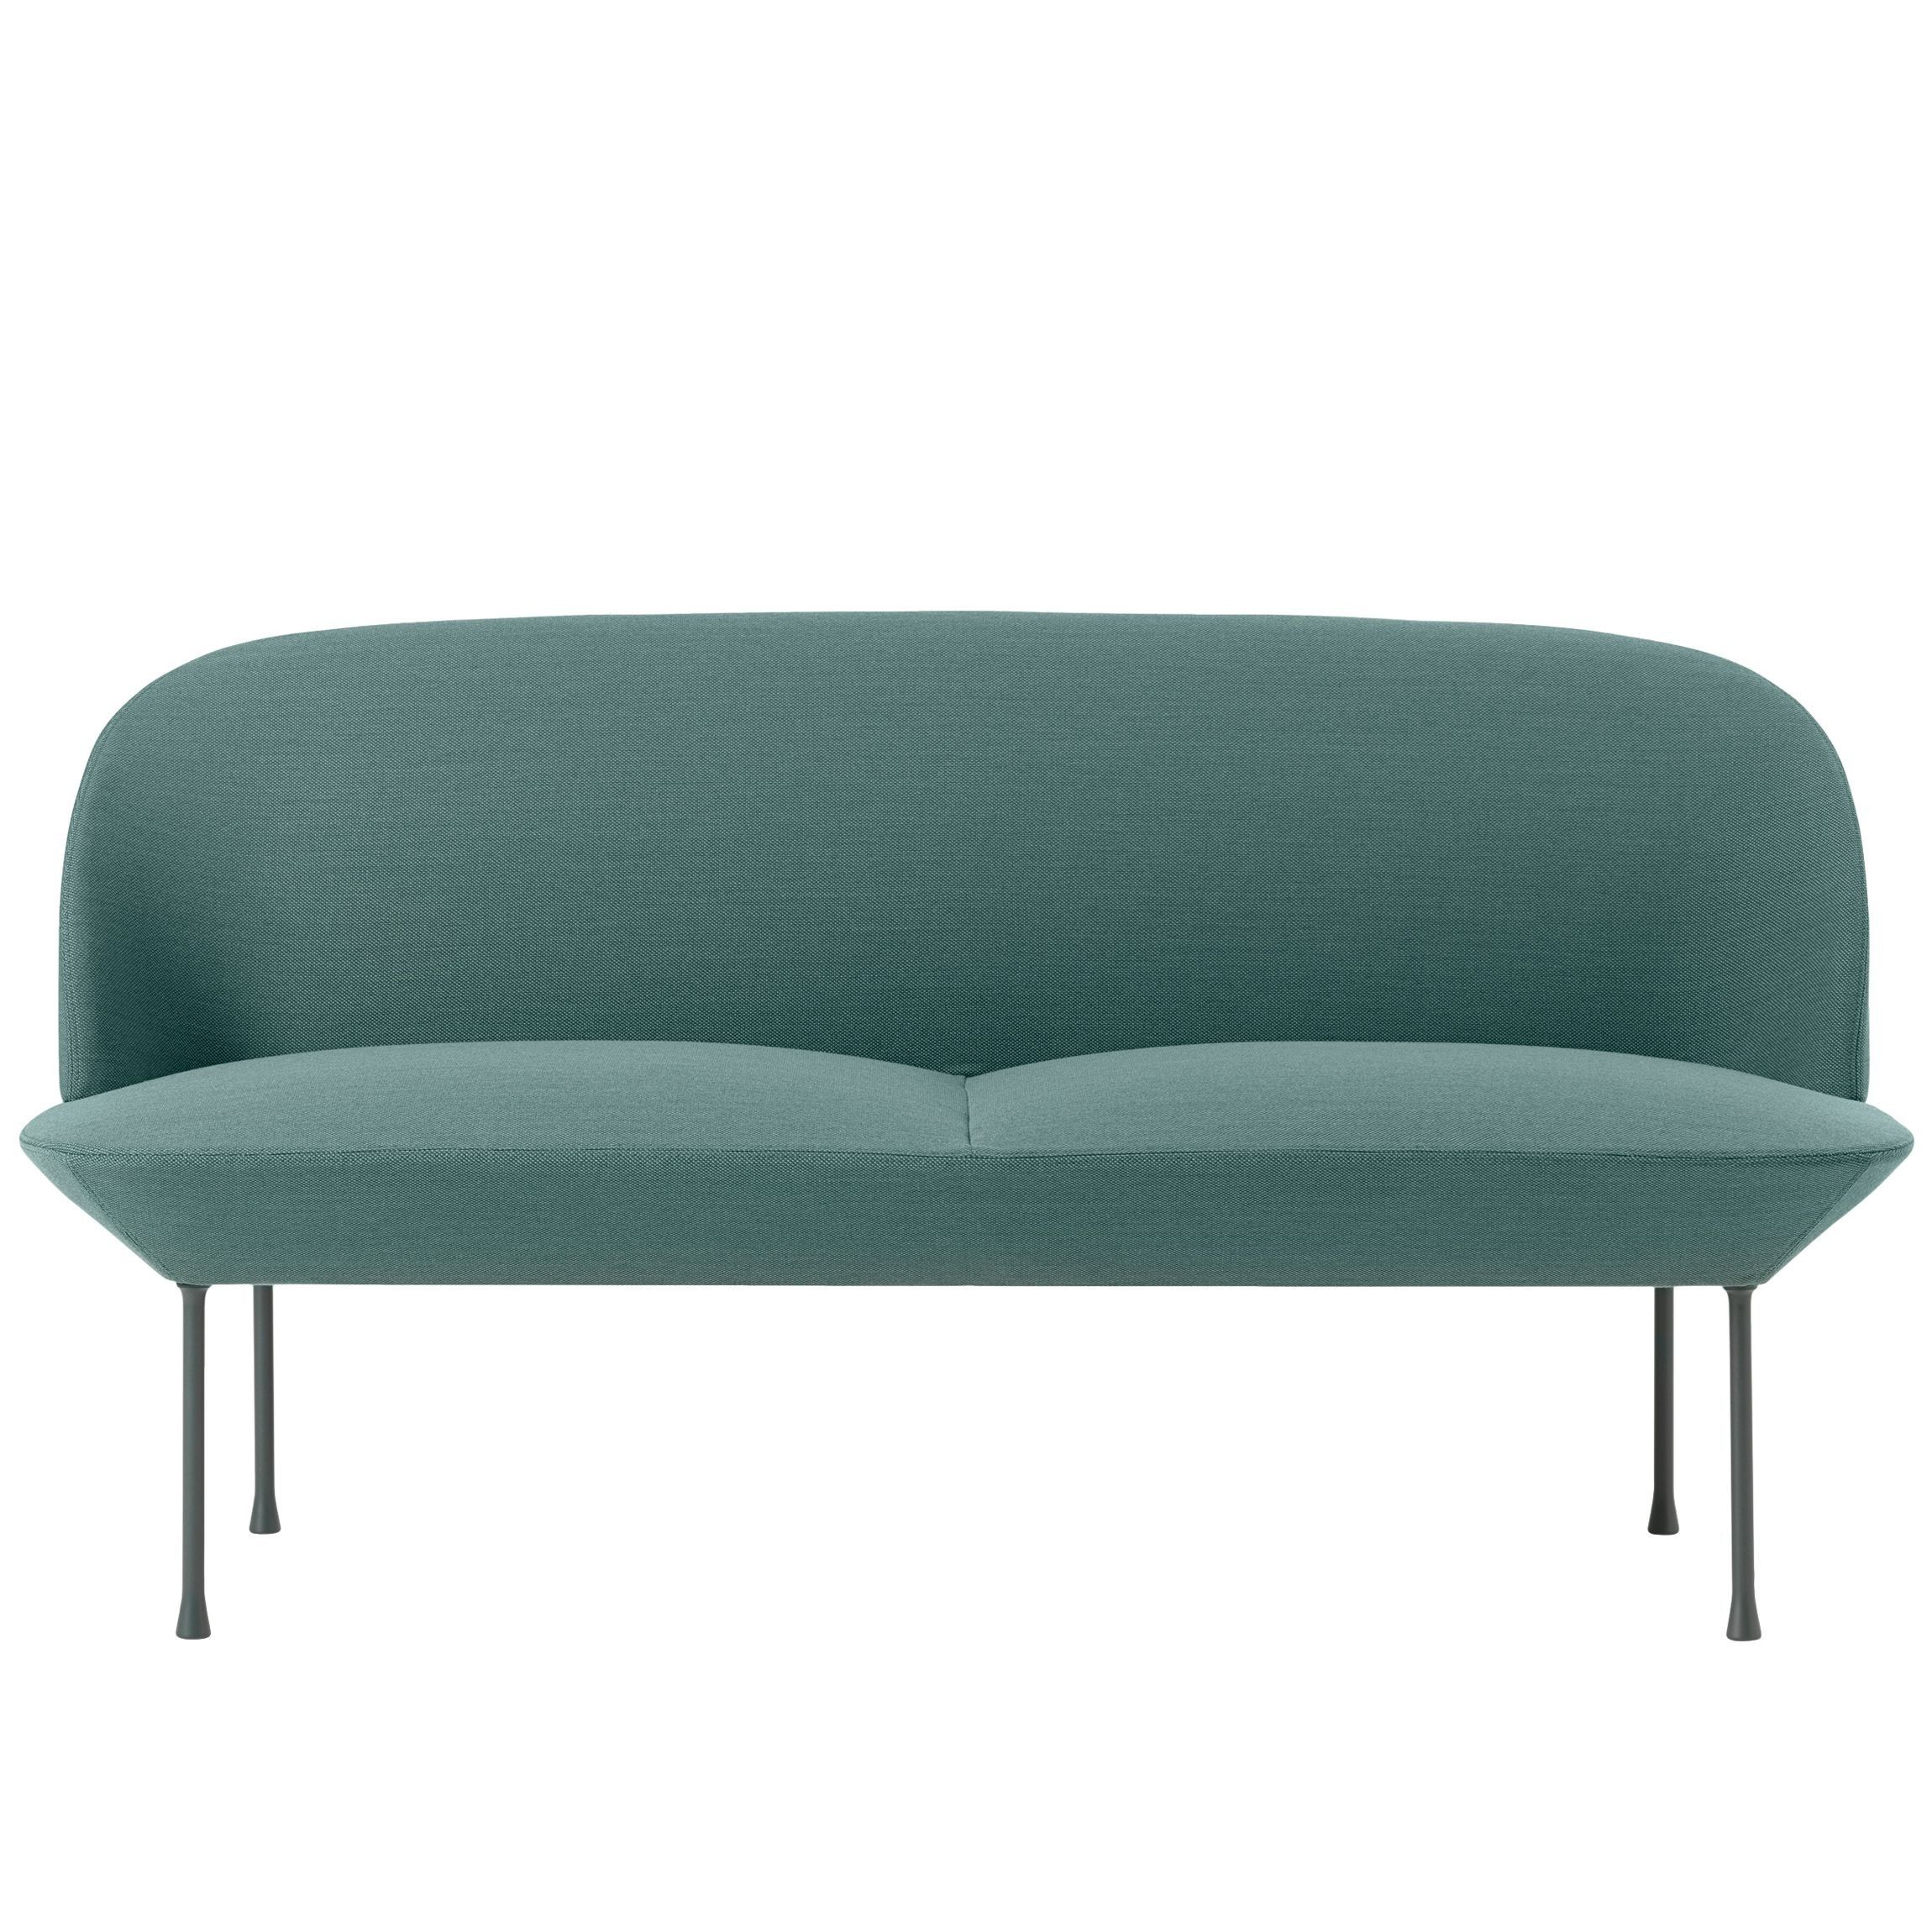 muuto oslo sofa bank tweezitter flinders verzendt gratis. Black Bedroom Furniture Sets. Home Design Ideas